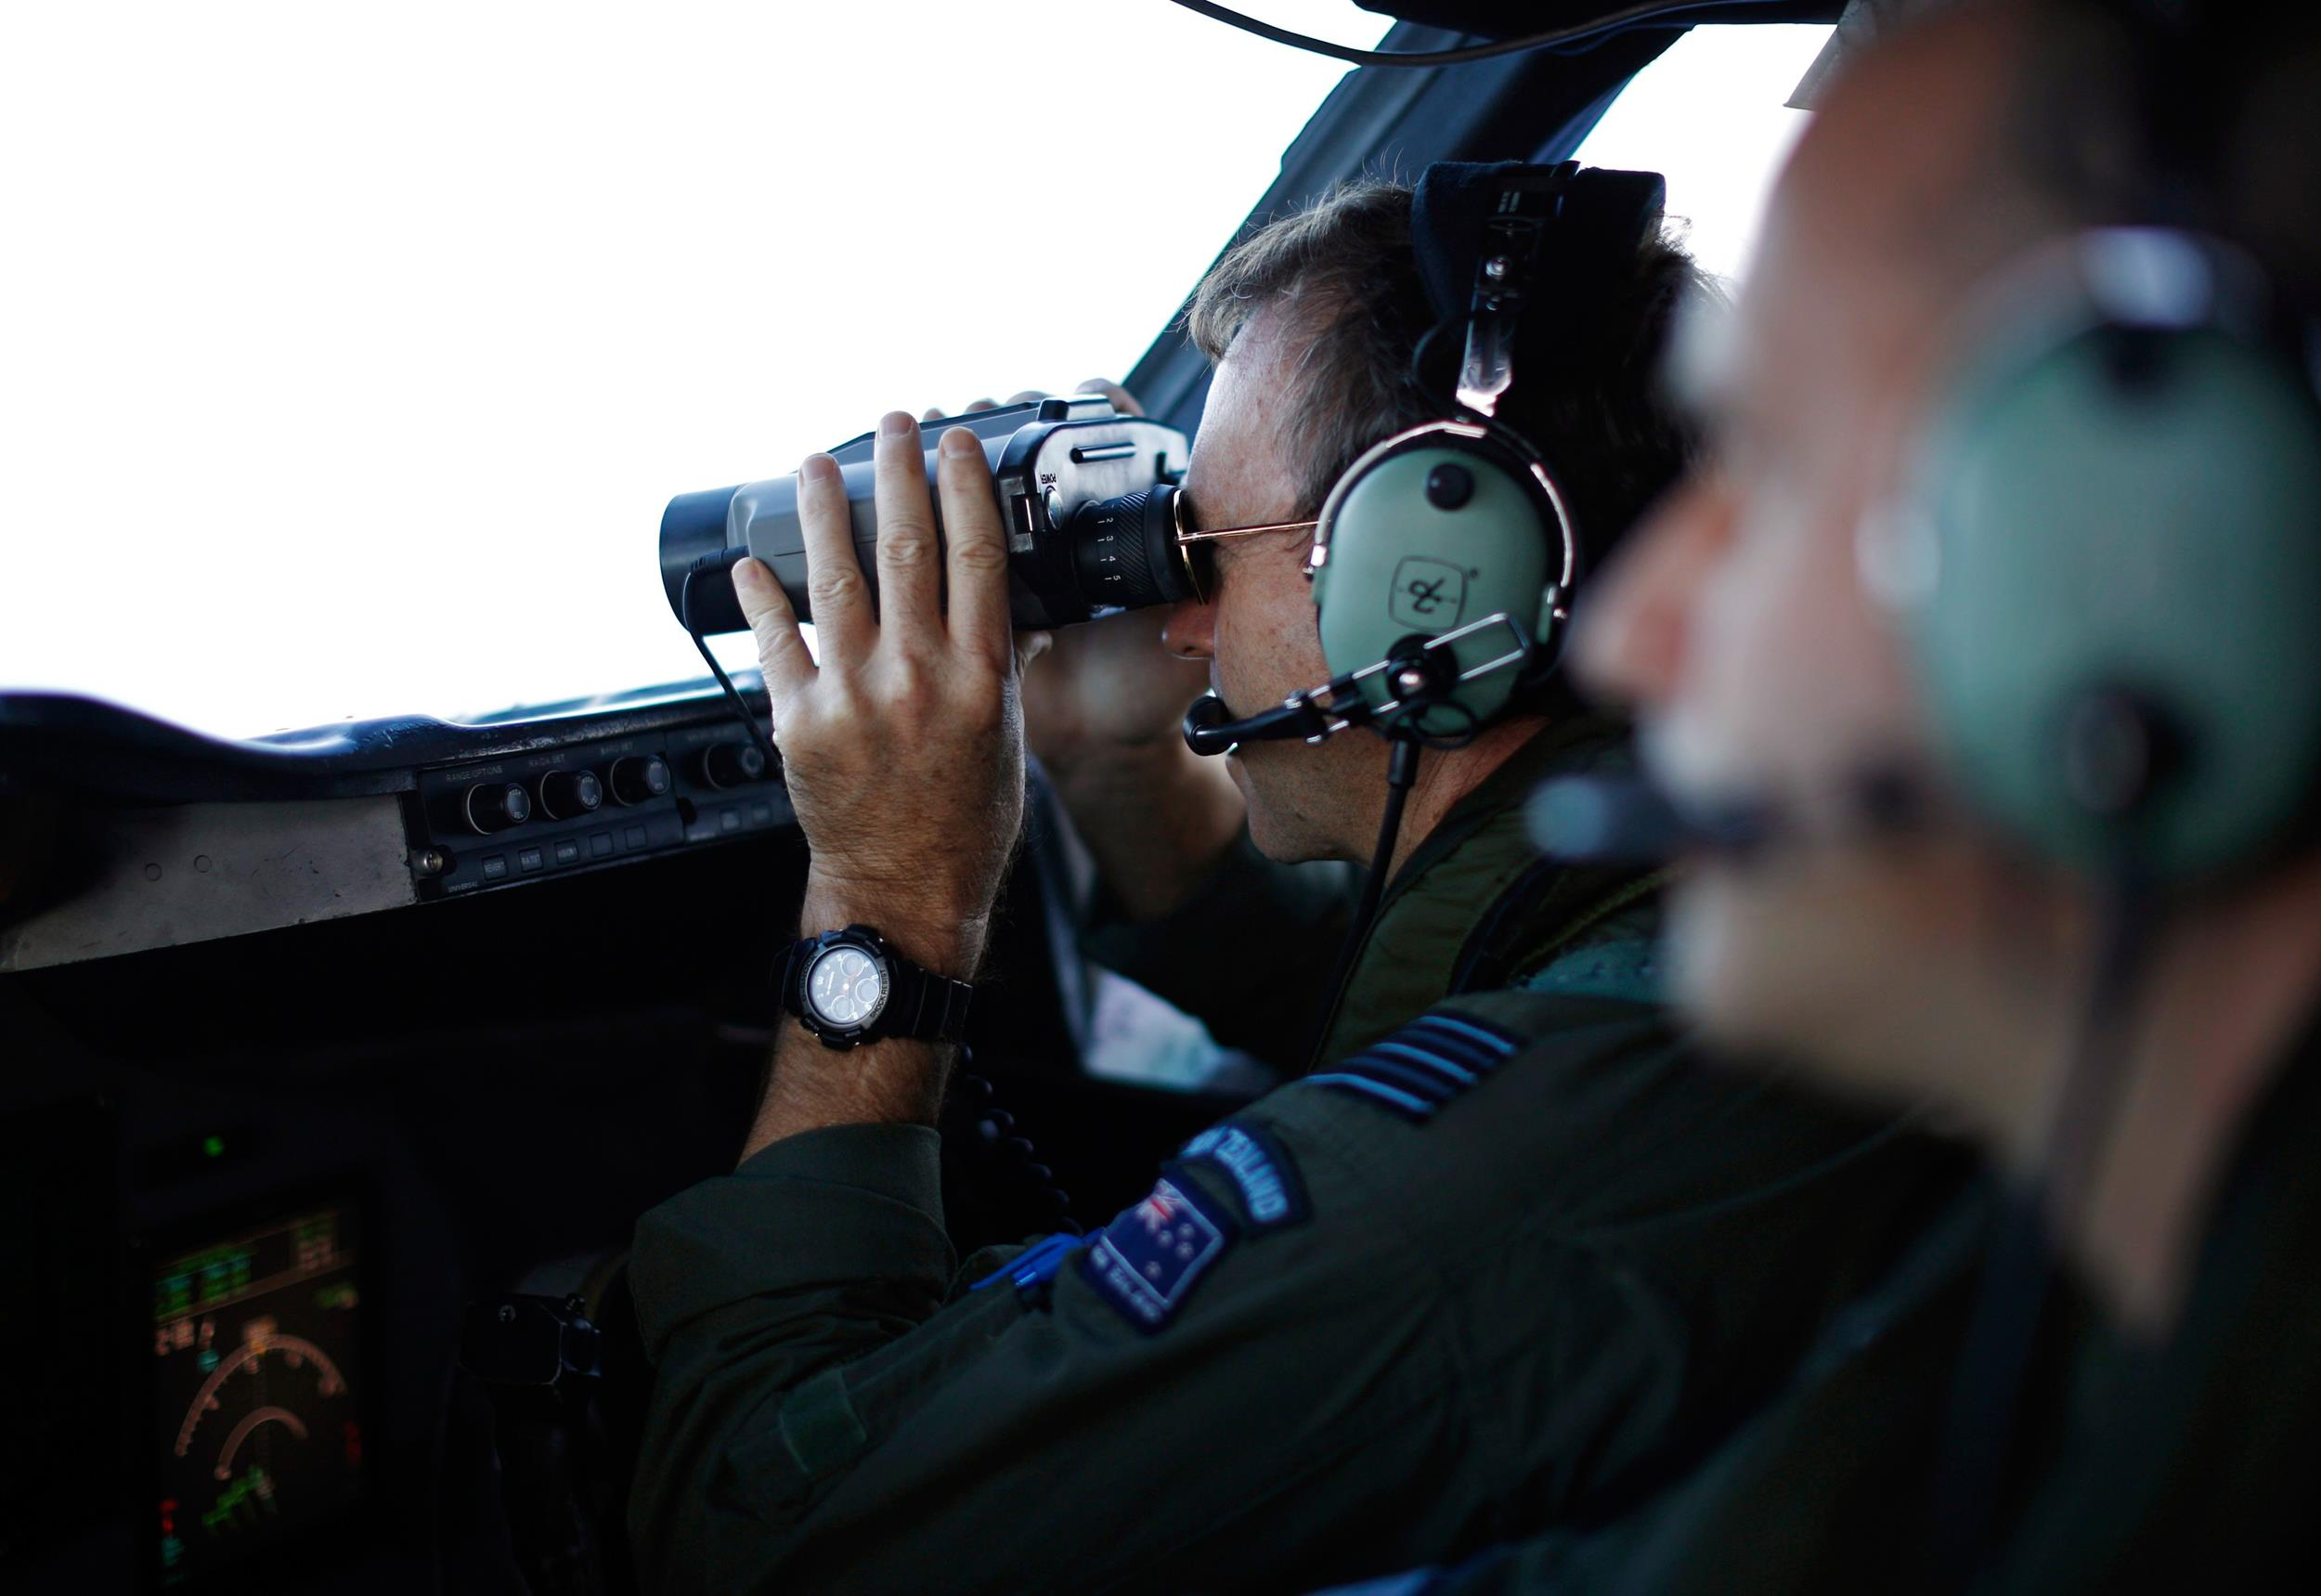 Image: Wing Commander Shearer looks through binoculars on a Royal New Zealand Air Force P-3K2 Orion aircraft during a search for the missing Malaysian Airlines MH370 over the southern Indian Ocean